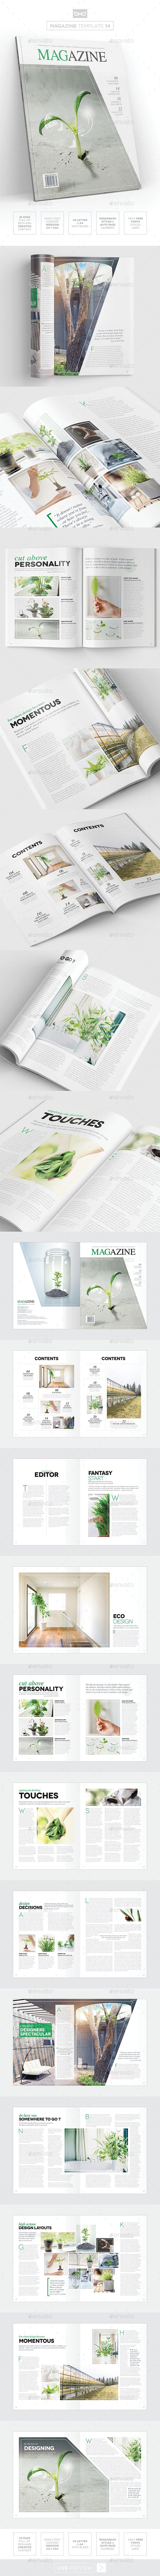 Magazine Template - InDesign 24 Page Layout V14 | Layouts, Template ...